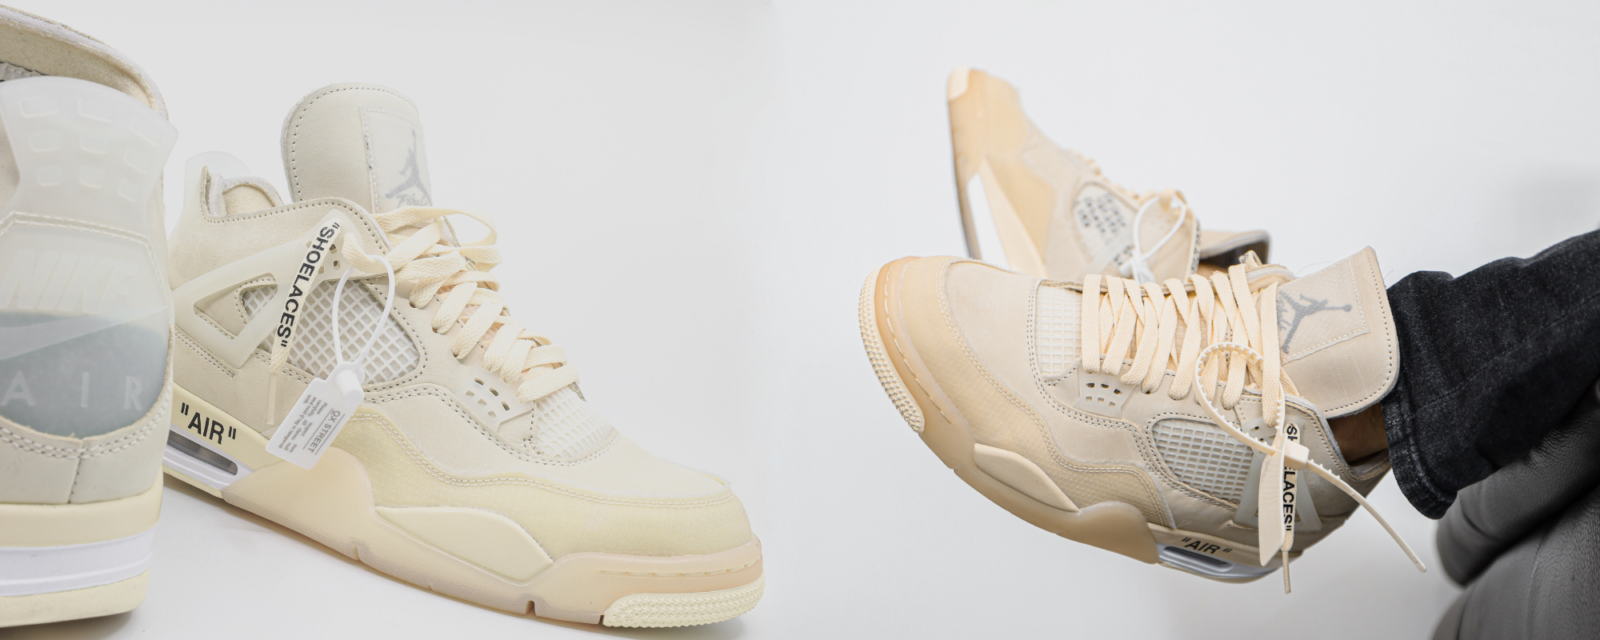 Ox Street is making shopping for rare, limited-edition sneakers a lot easier